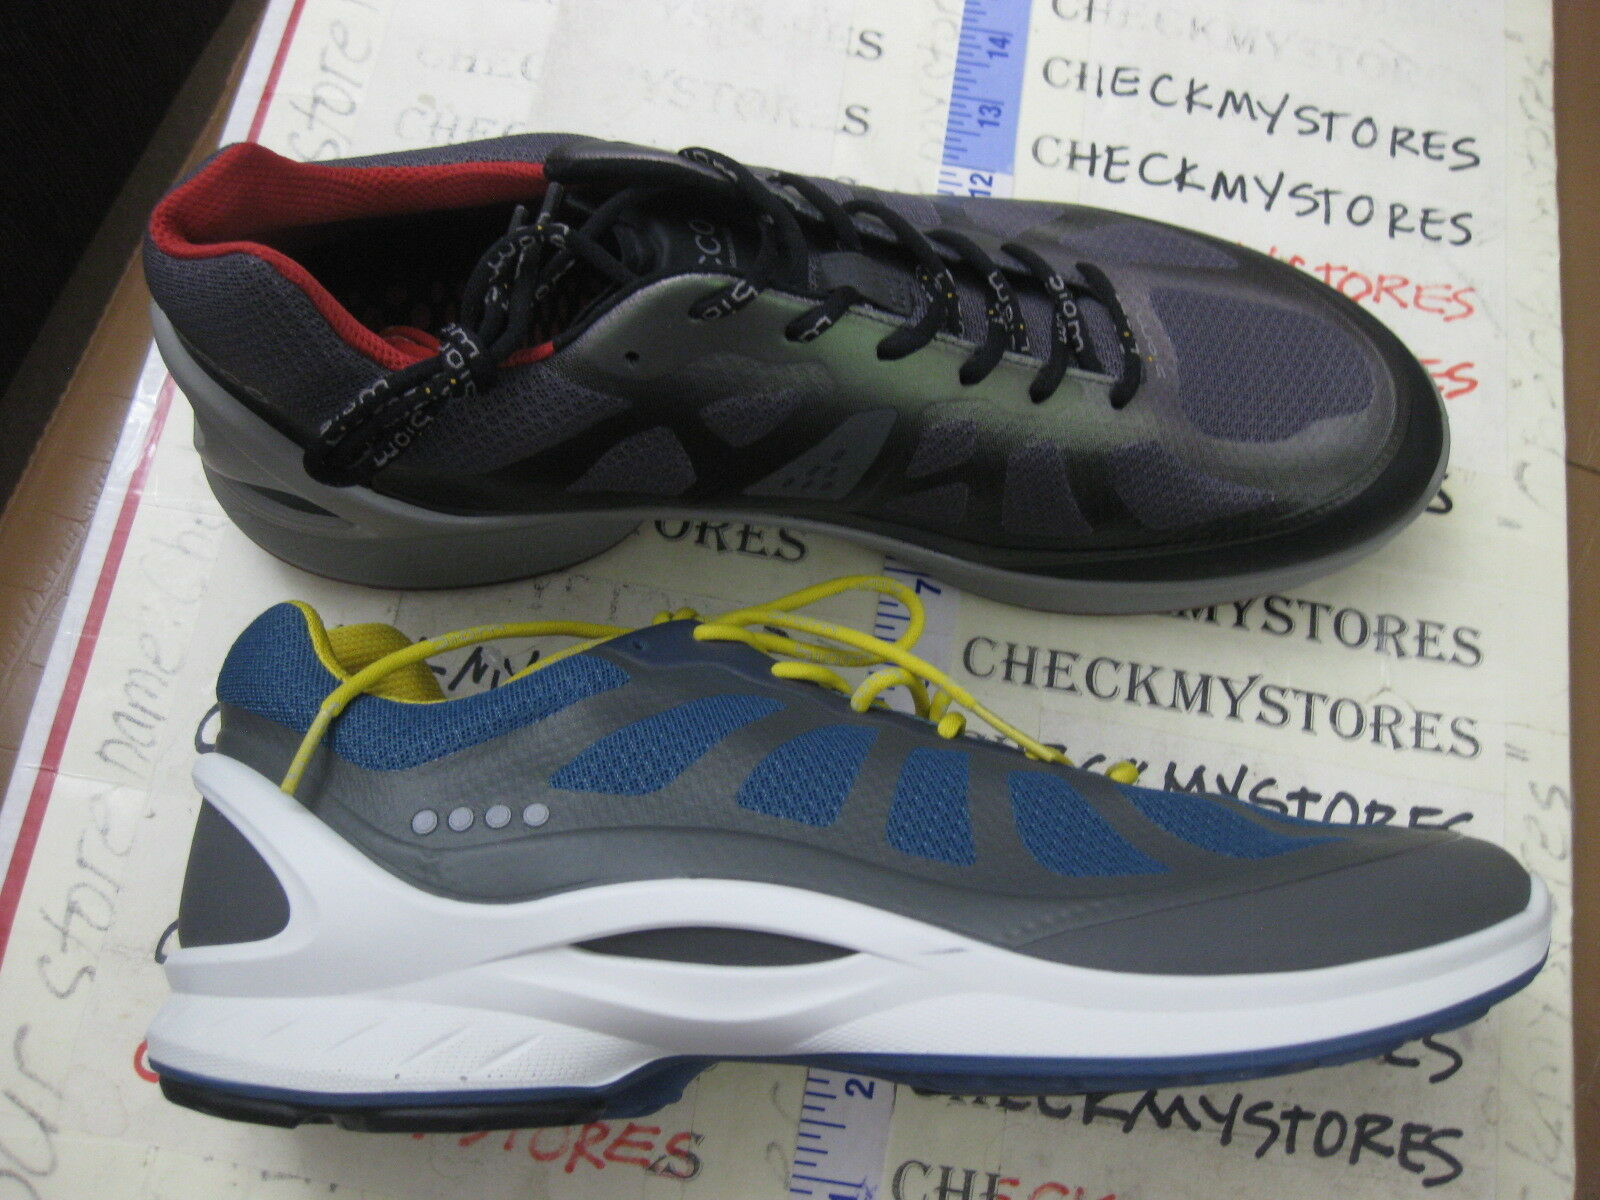 NEW  ECCO 837504 Biom Fjuel Racer COMFORT ATHLETIC SHOES CHOOSE SIZES-COLORS